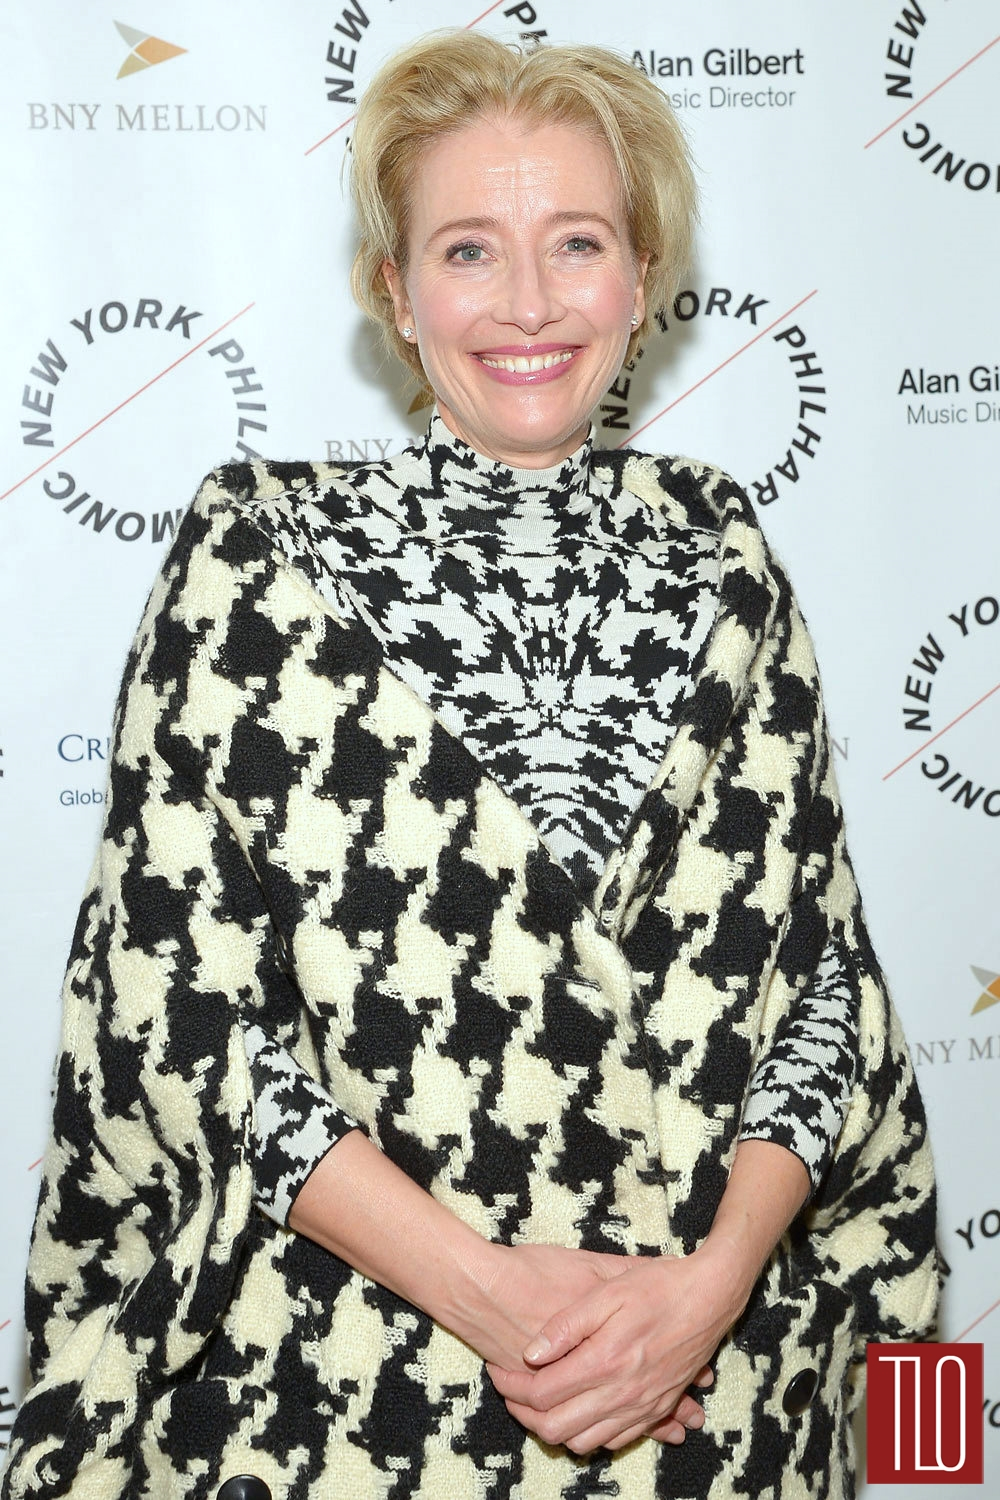 Emma-Thompson-Sweeney-Todd-Opening-Night-Gala-NYC-Tom-Lorenzo-Site-TLO (1)